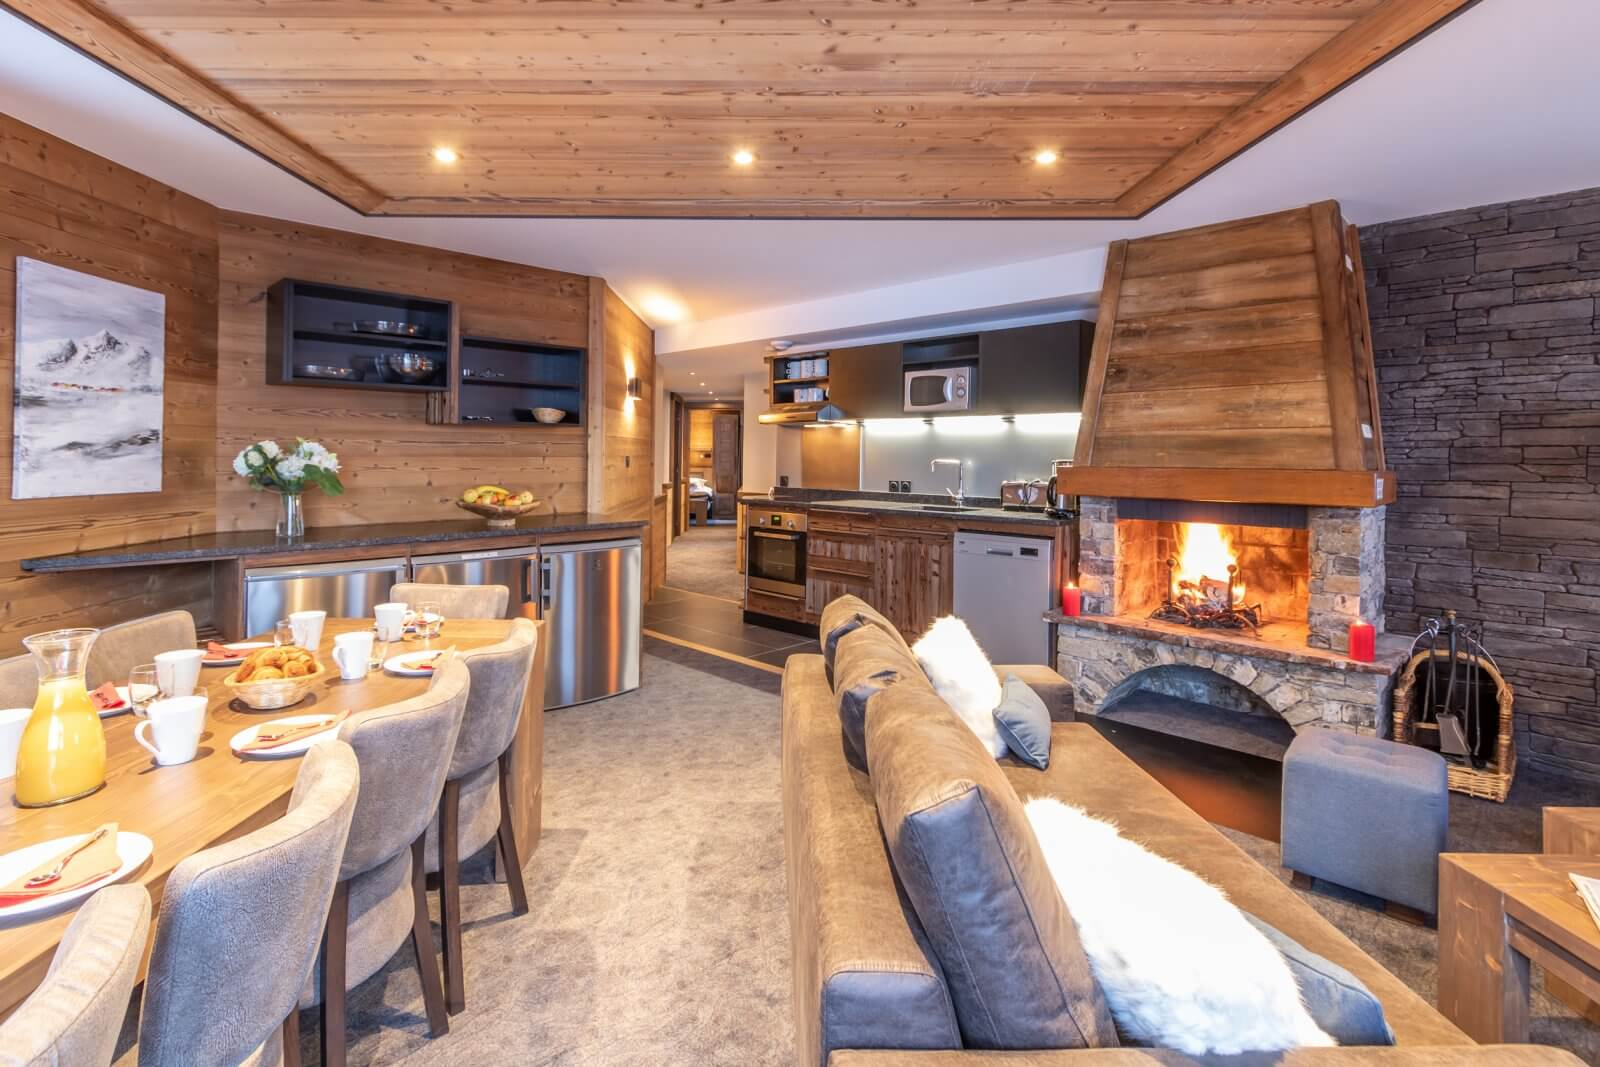 An image of the living area with a stone fireplace